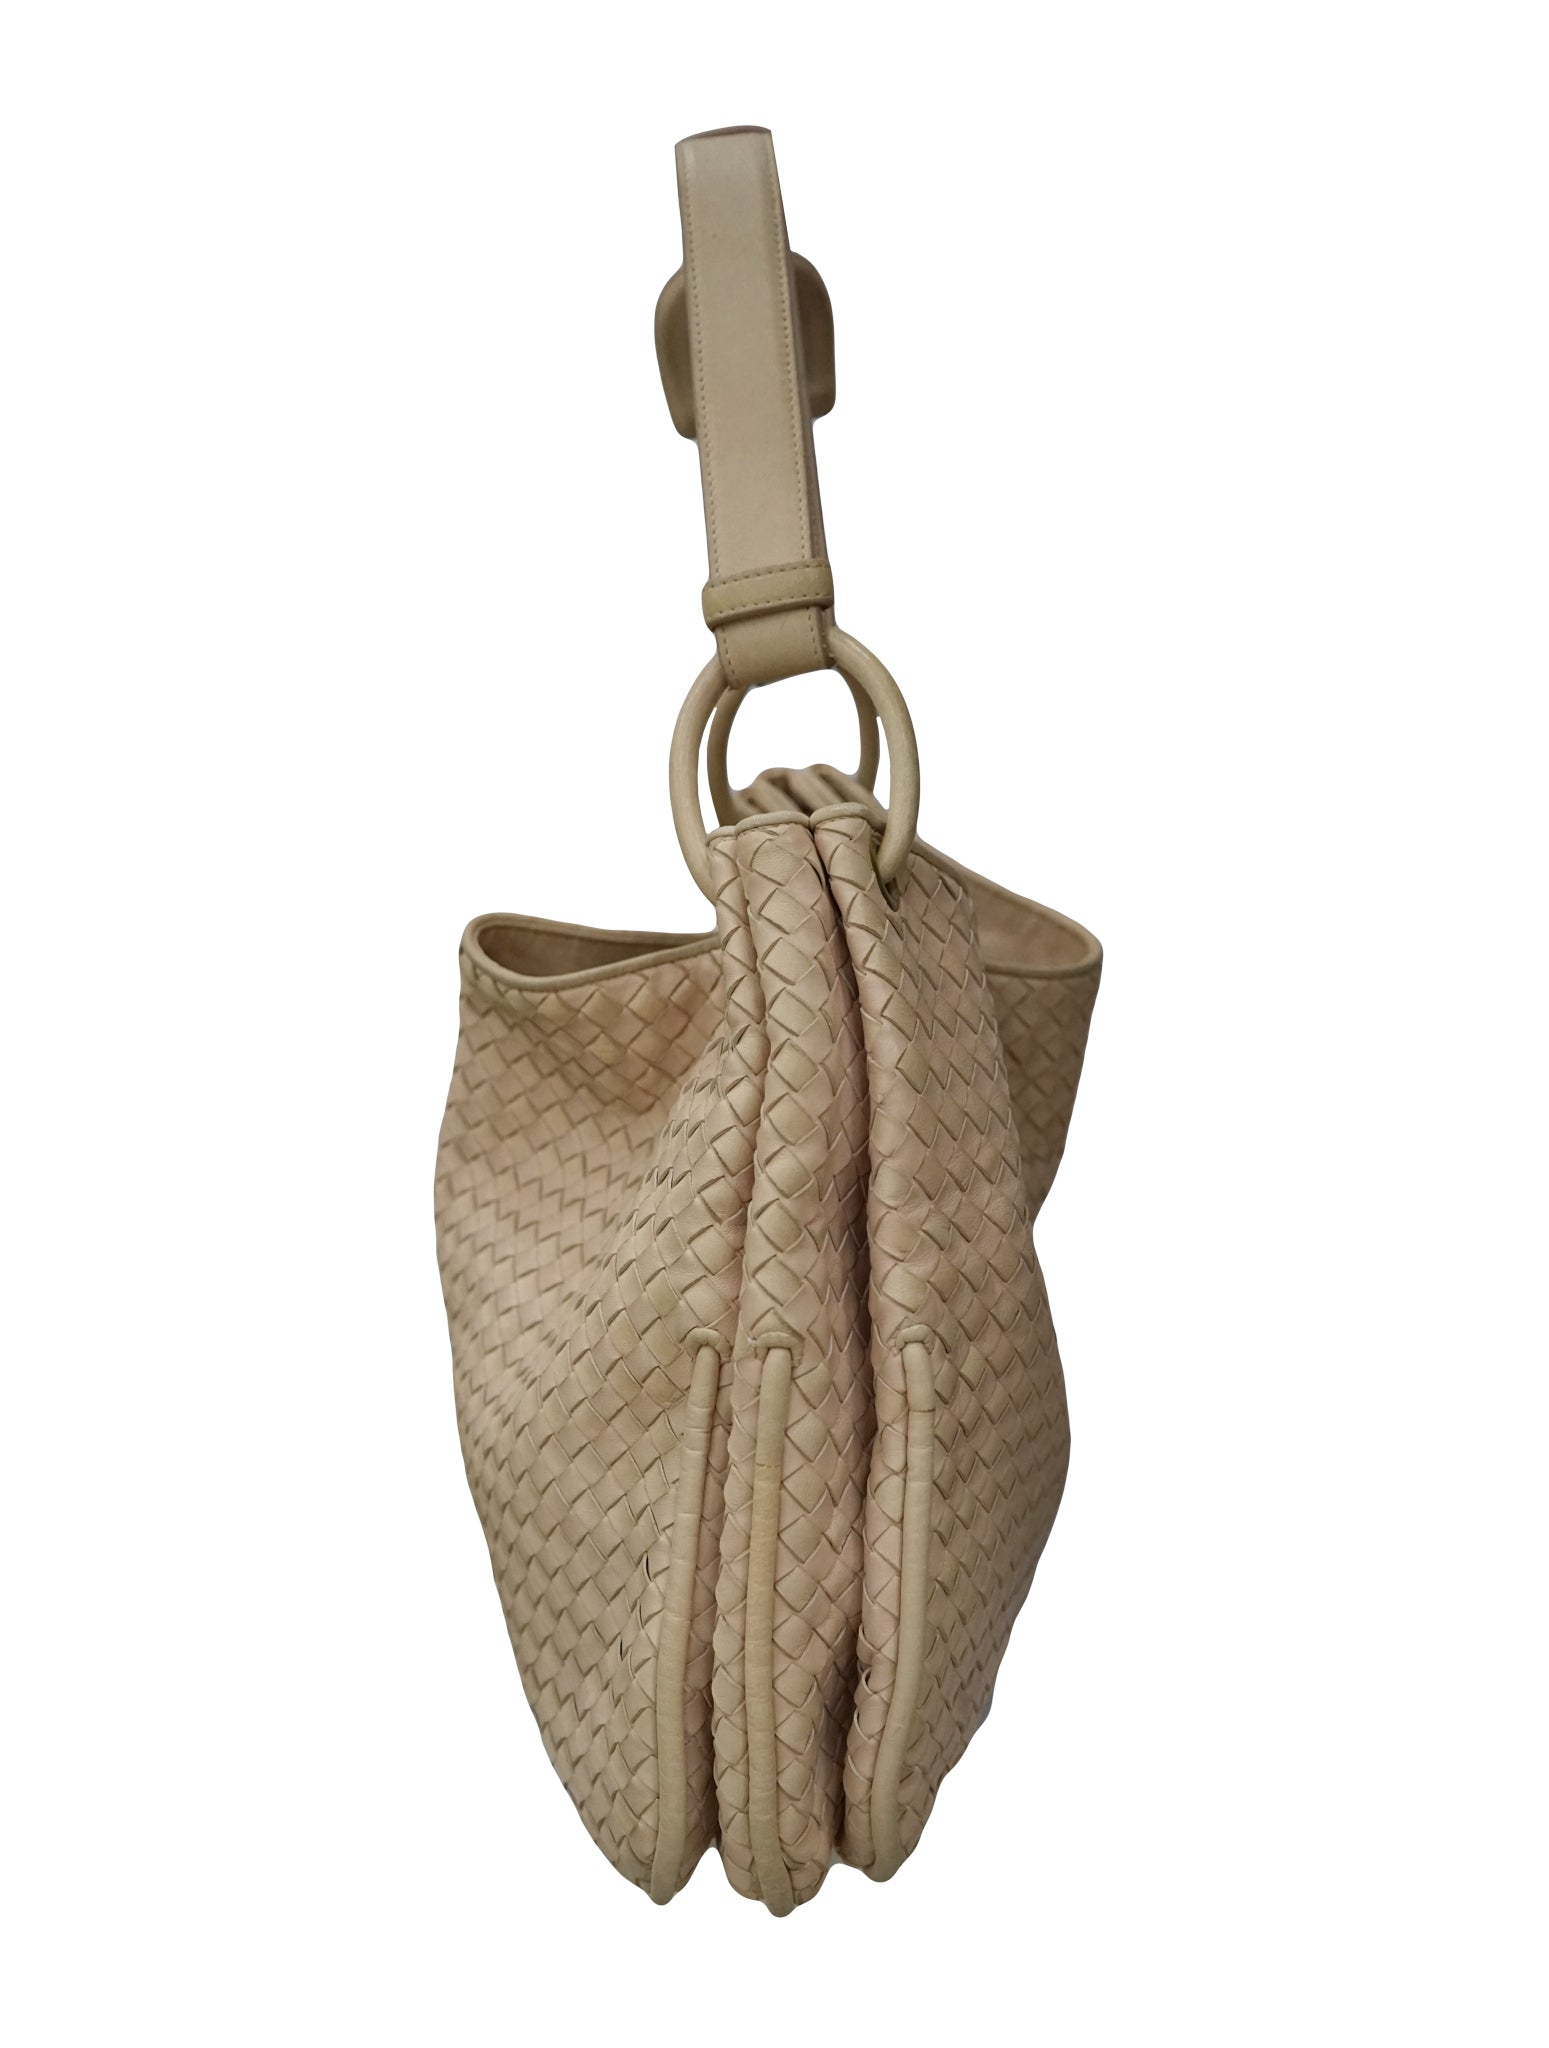 LIGHT PINK INTRECCIATO WOVEN NAPPA LEATHER TOTE BAG